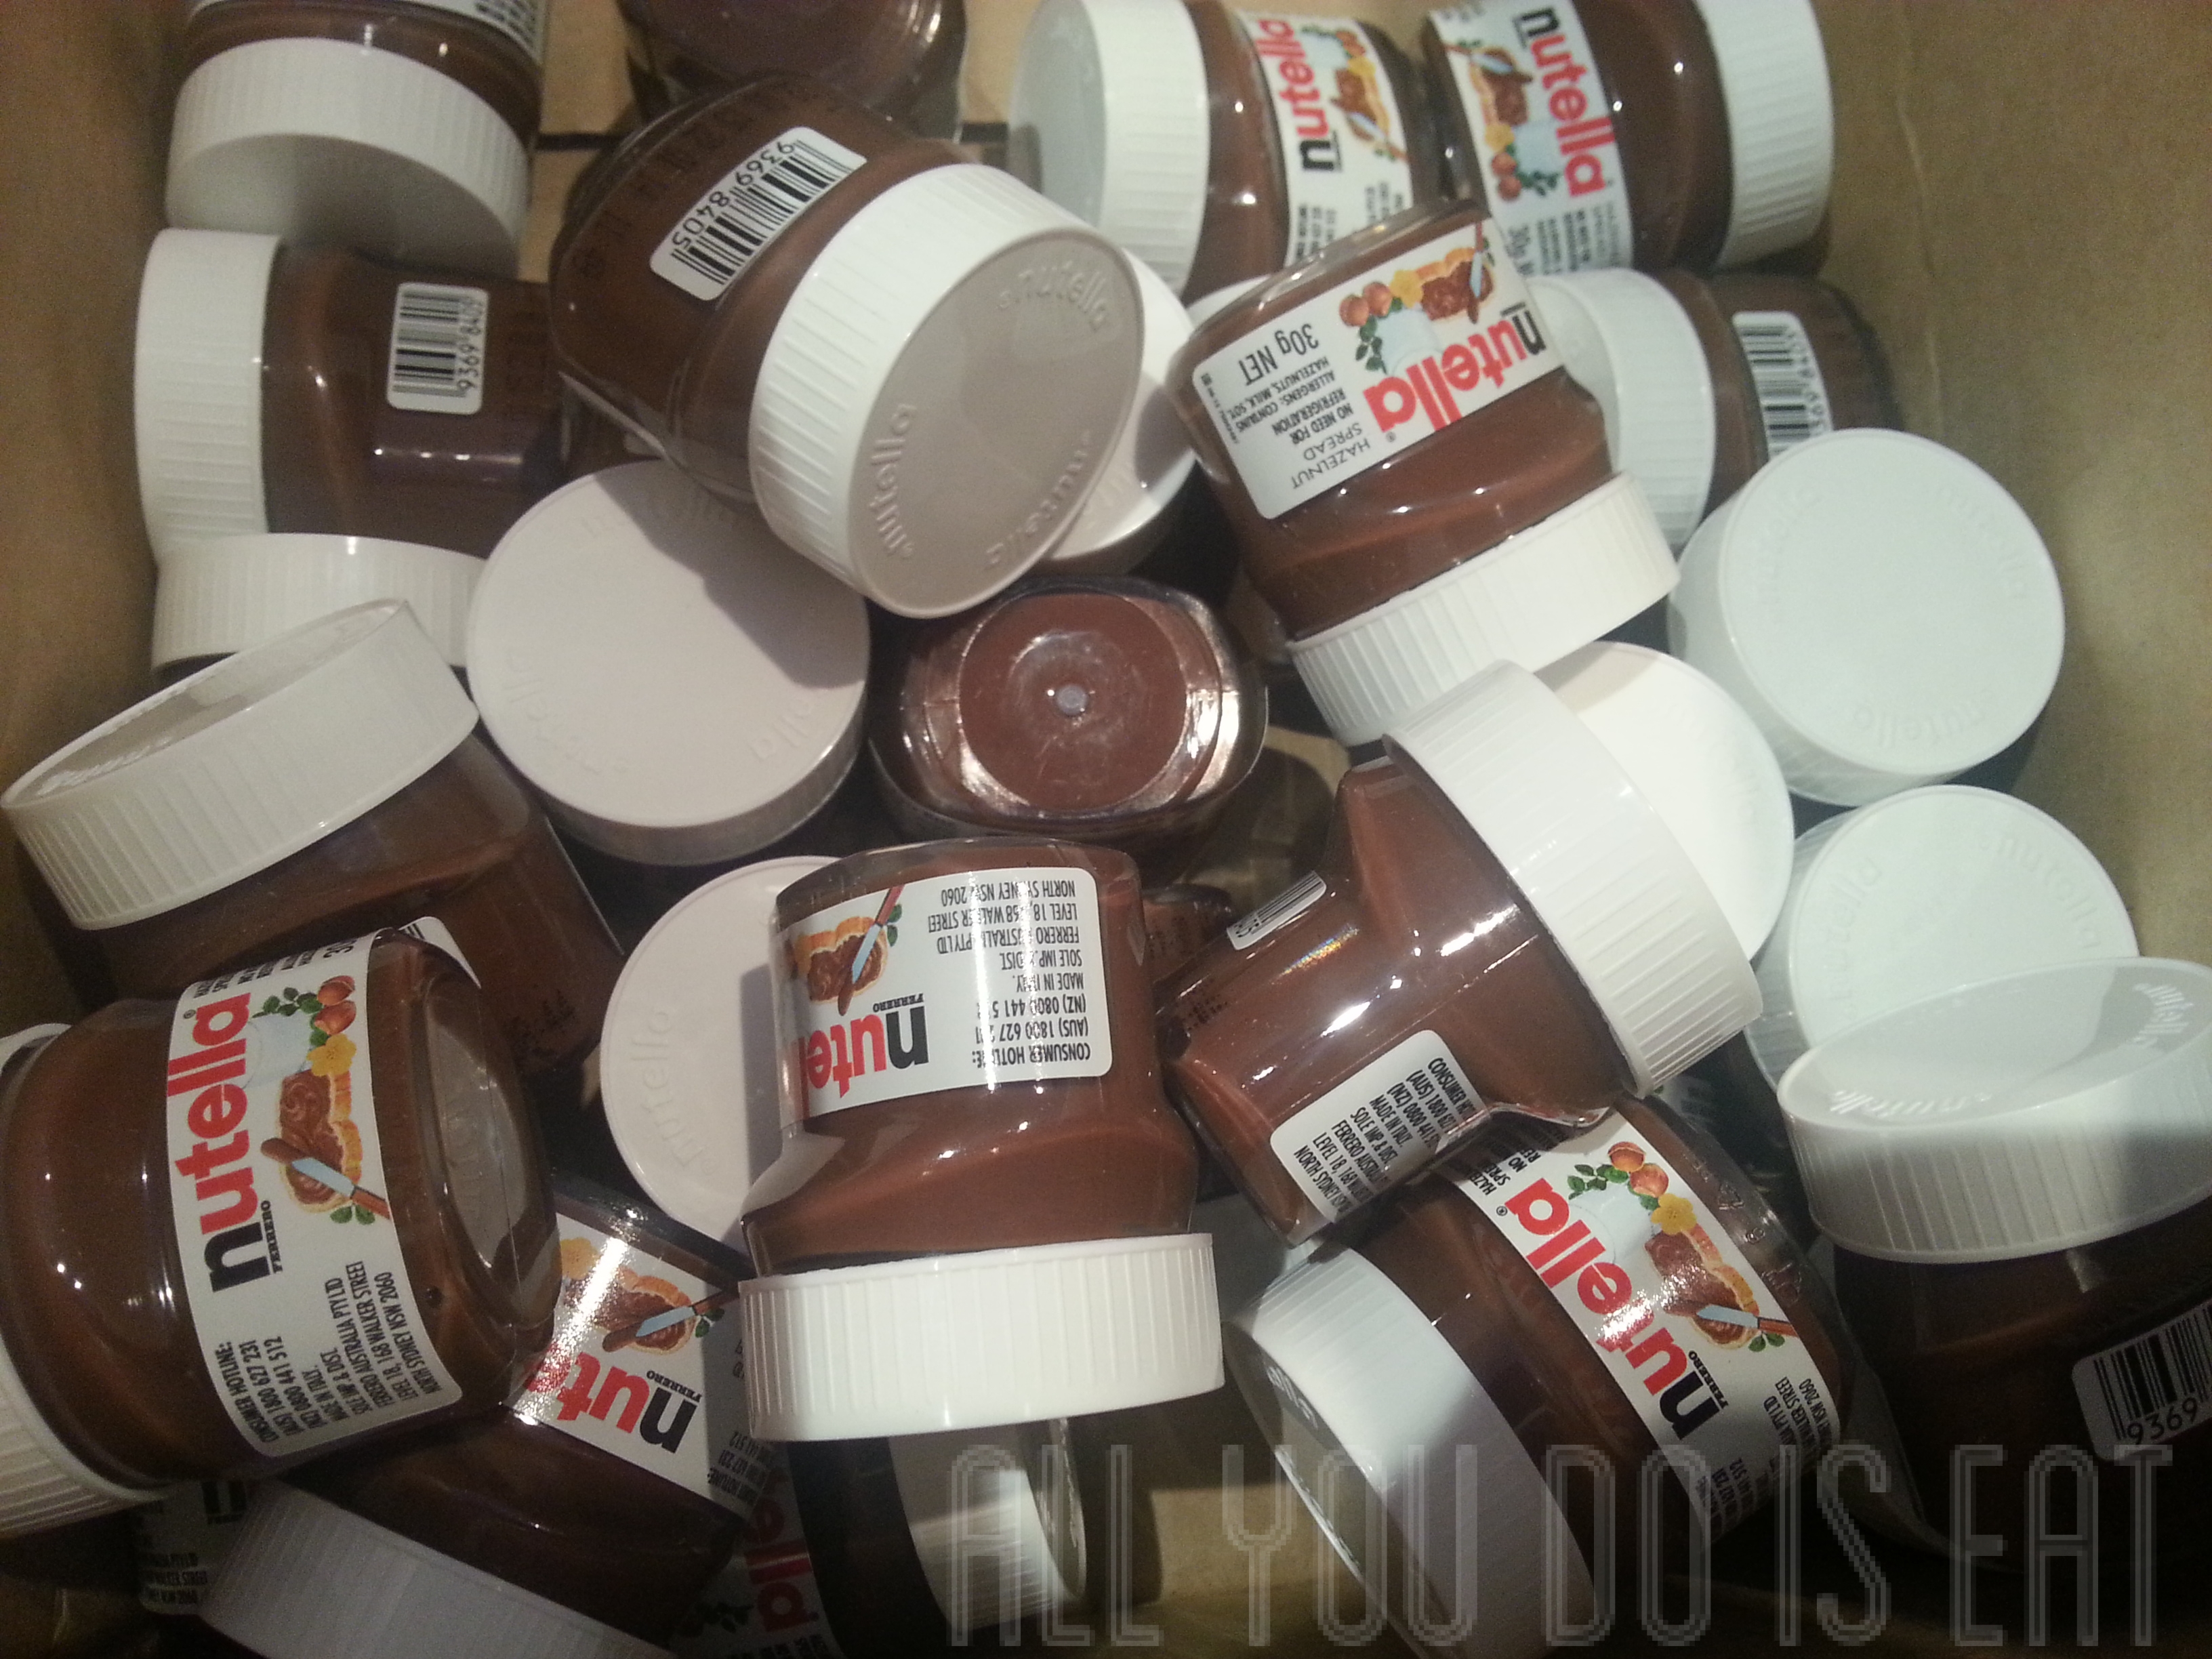 The Great Nutella Giveaway